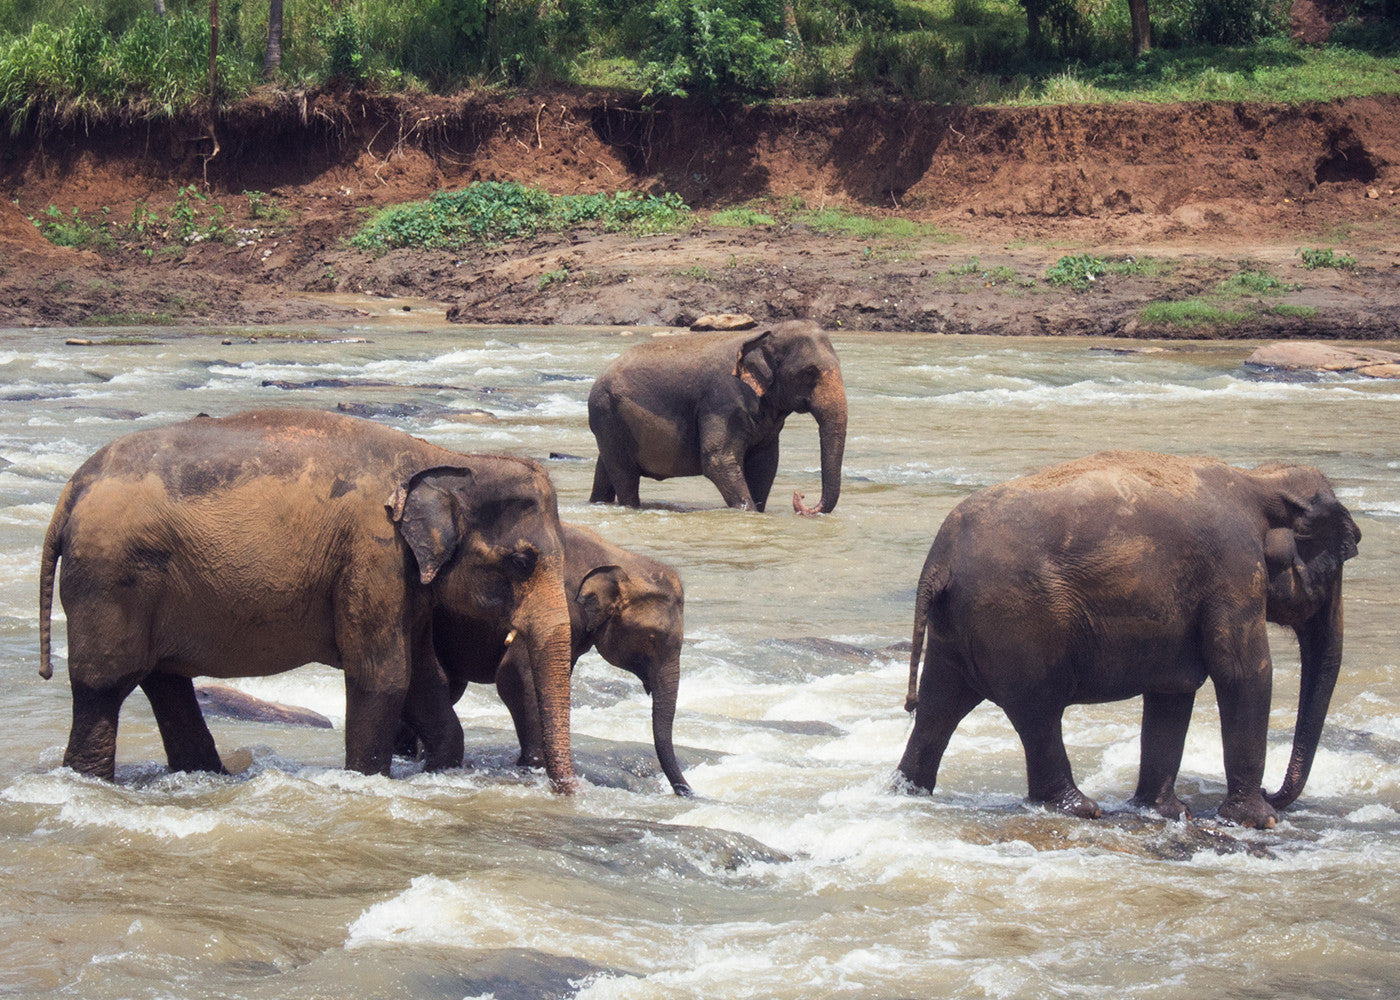 An elephant family trekking through the cool water